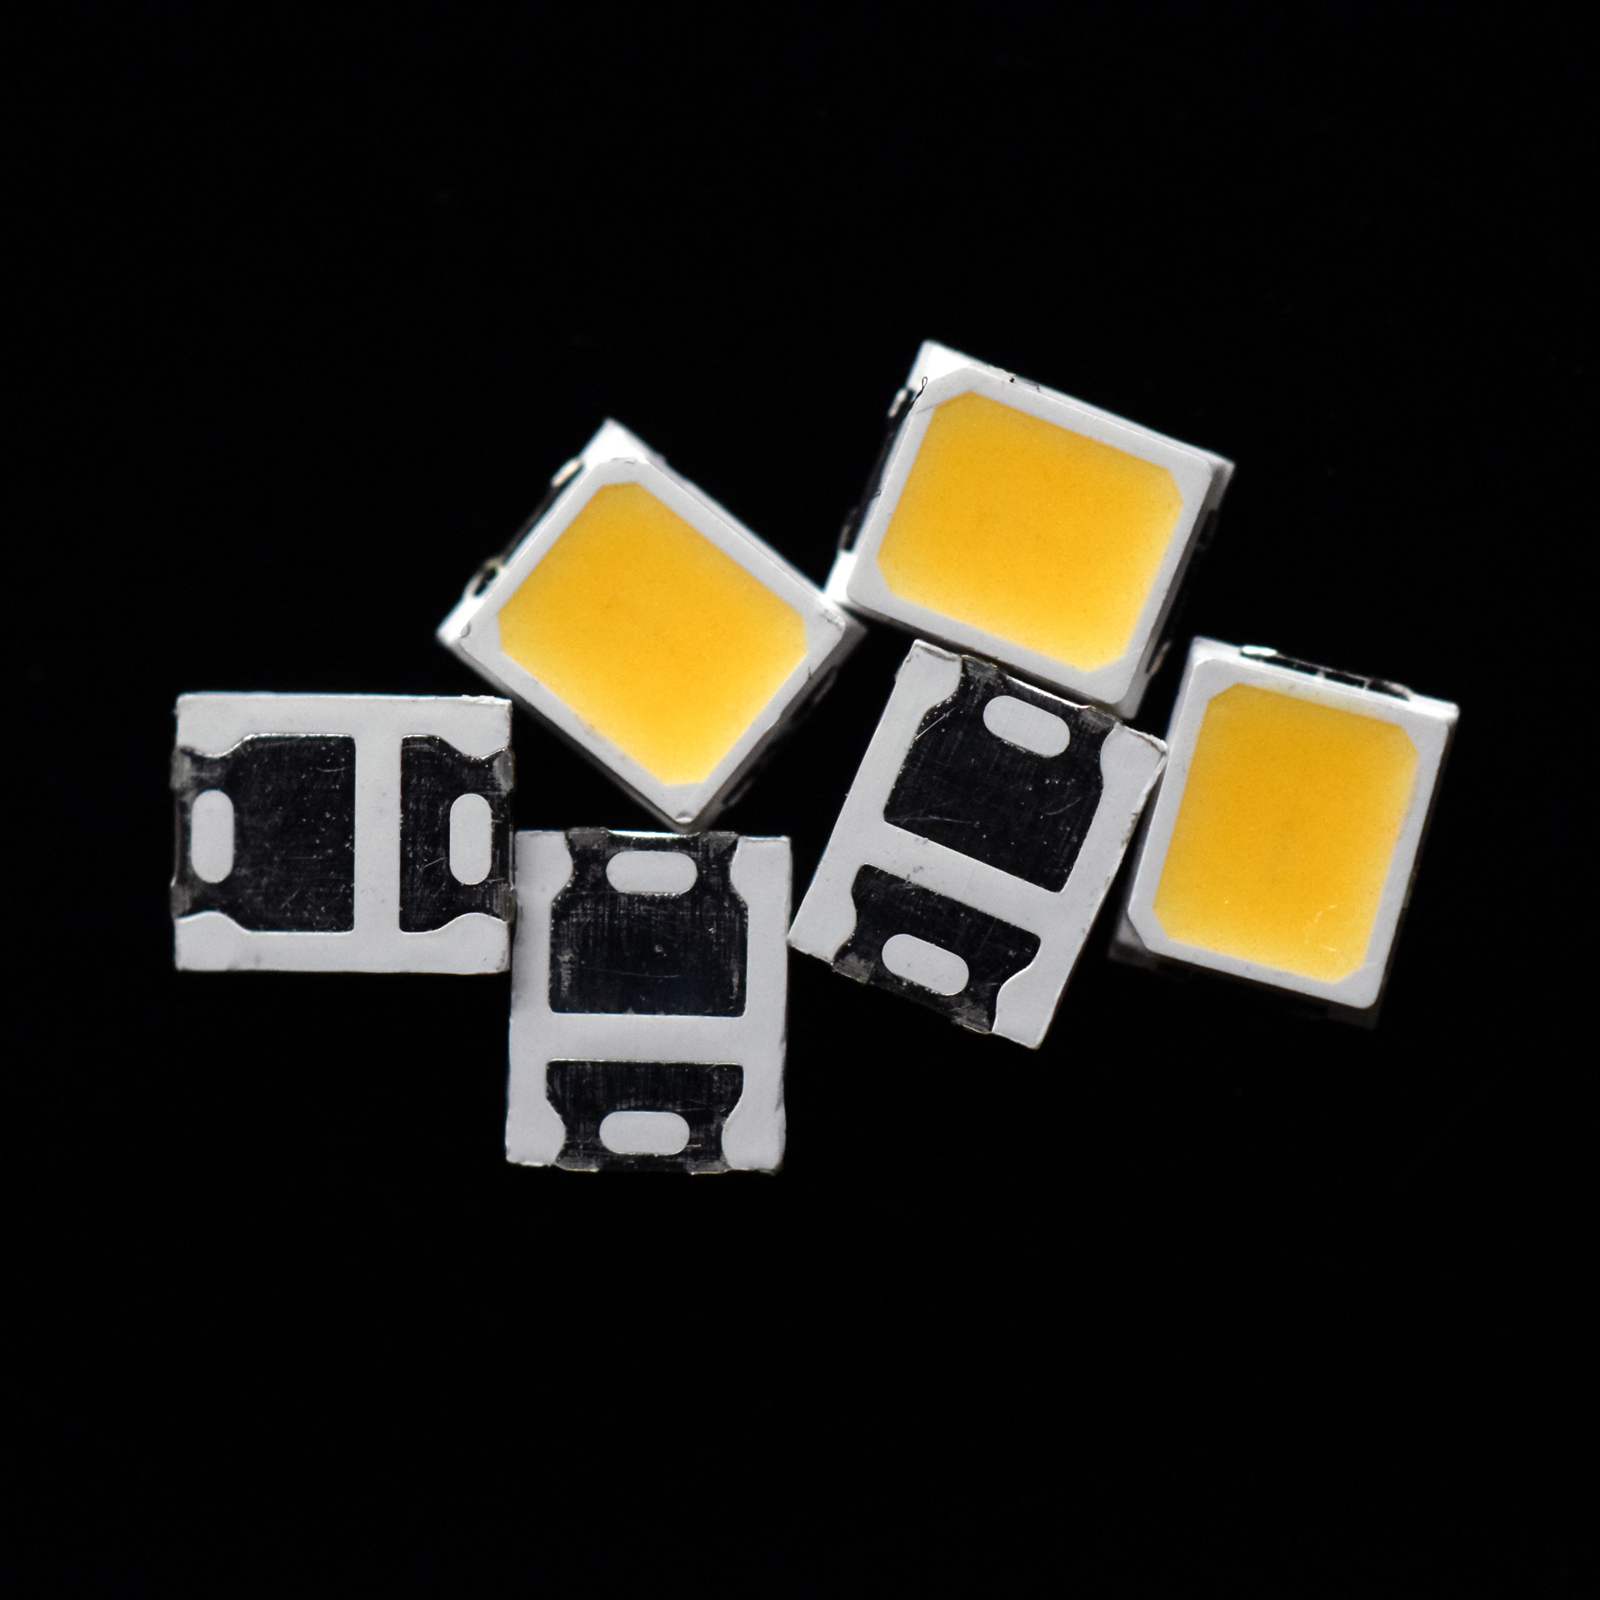 0.5W Warm White LED